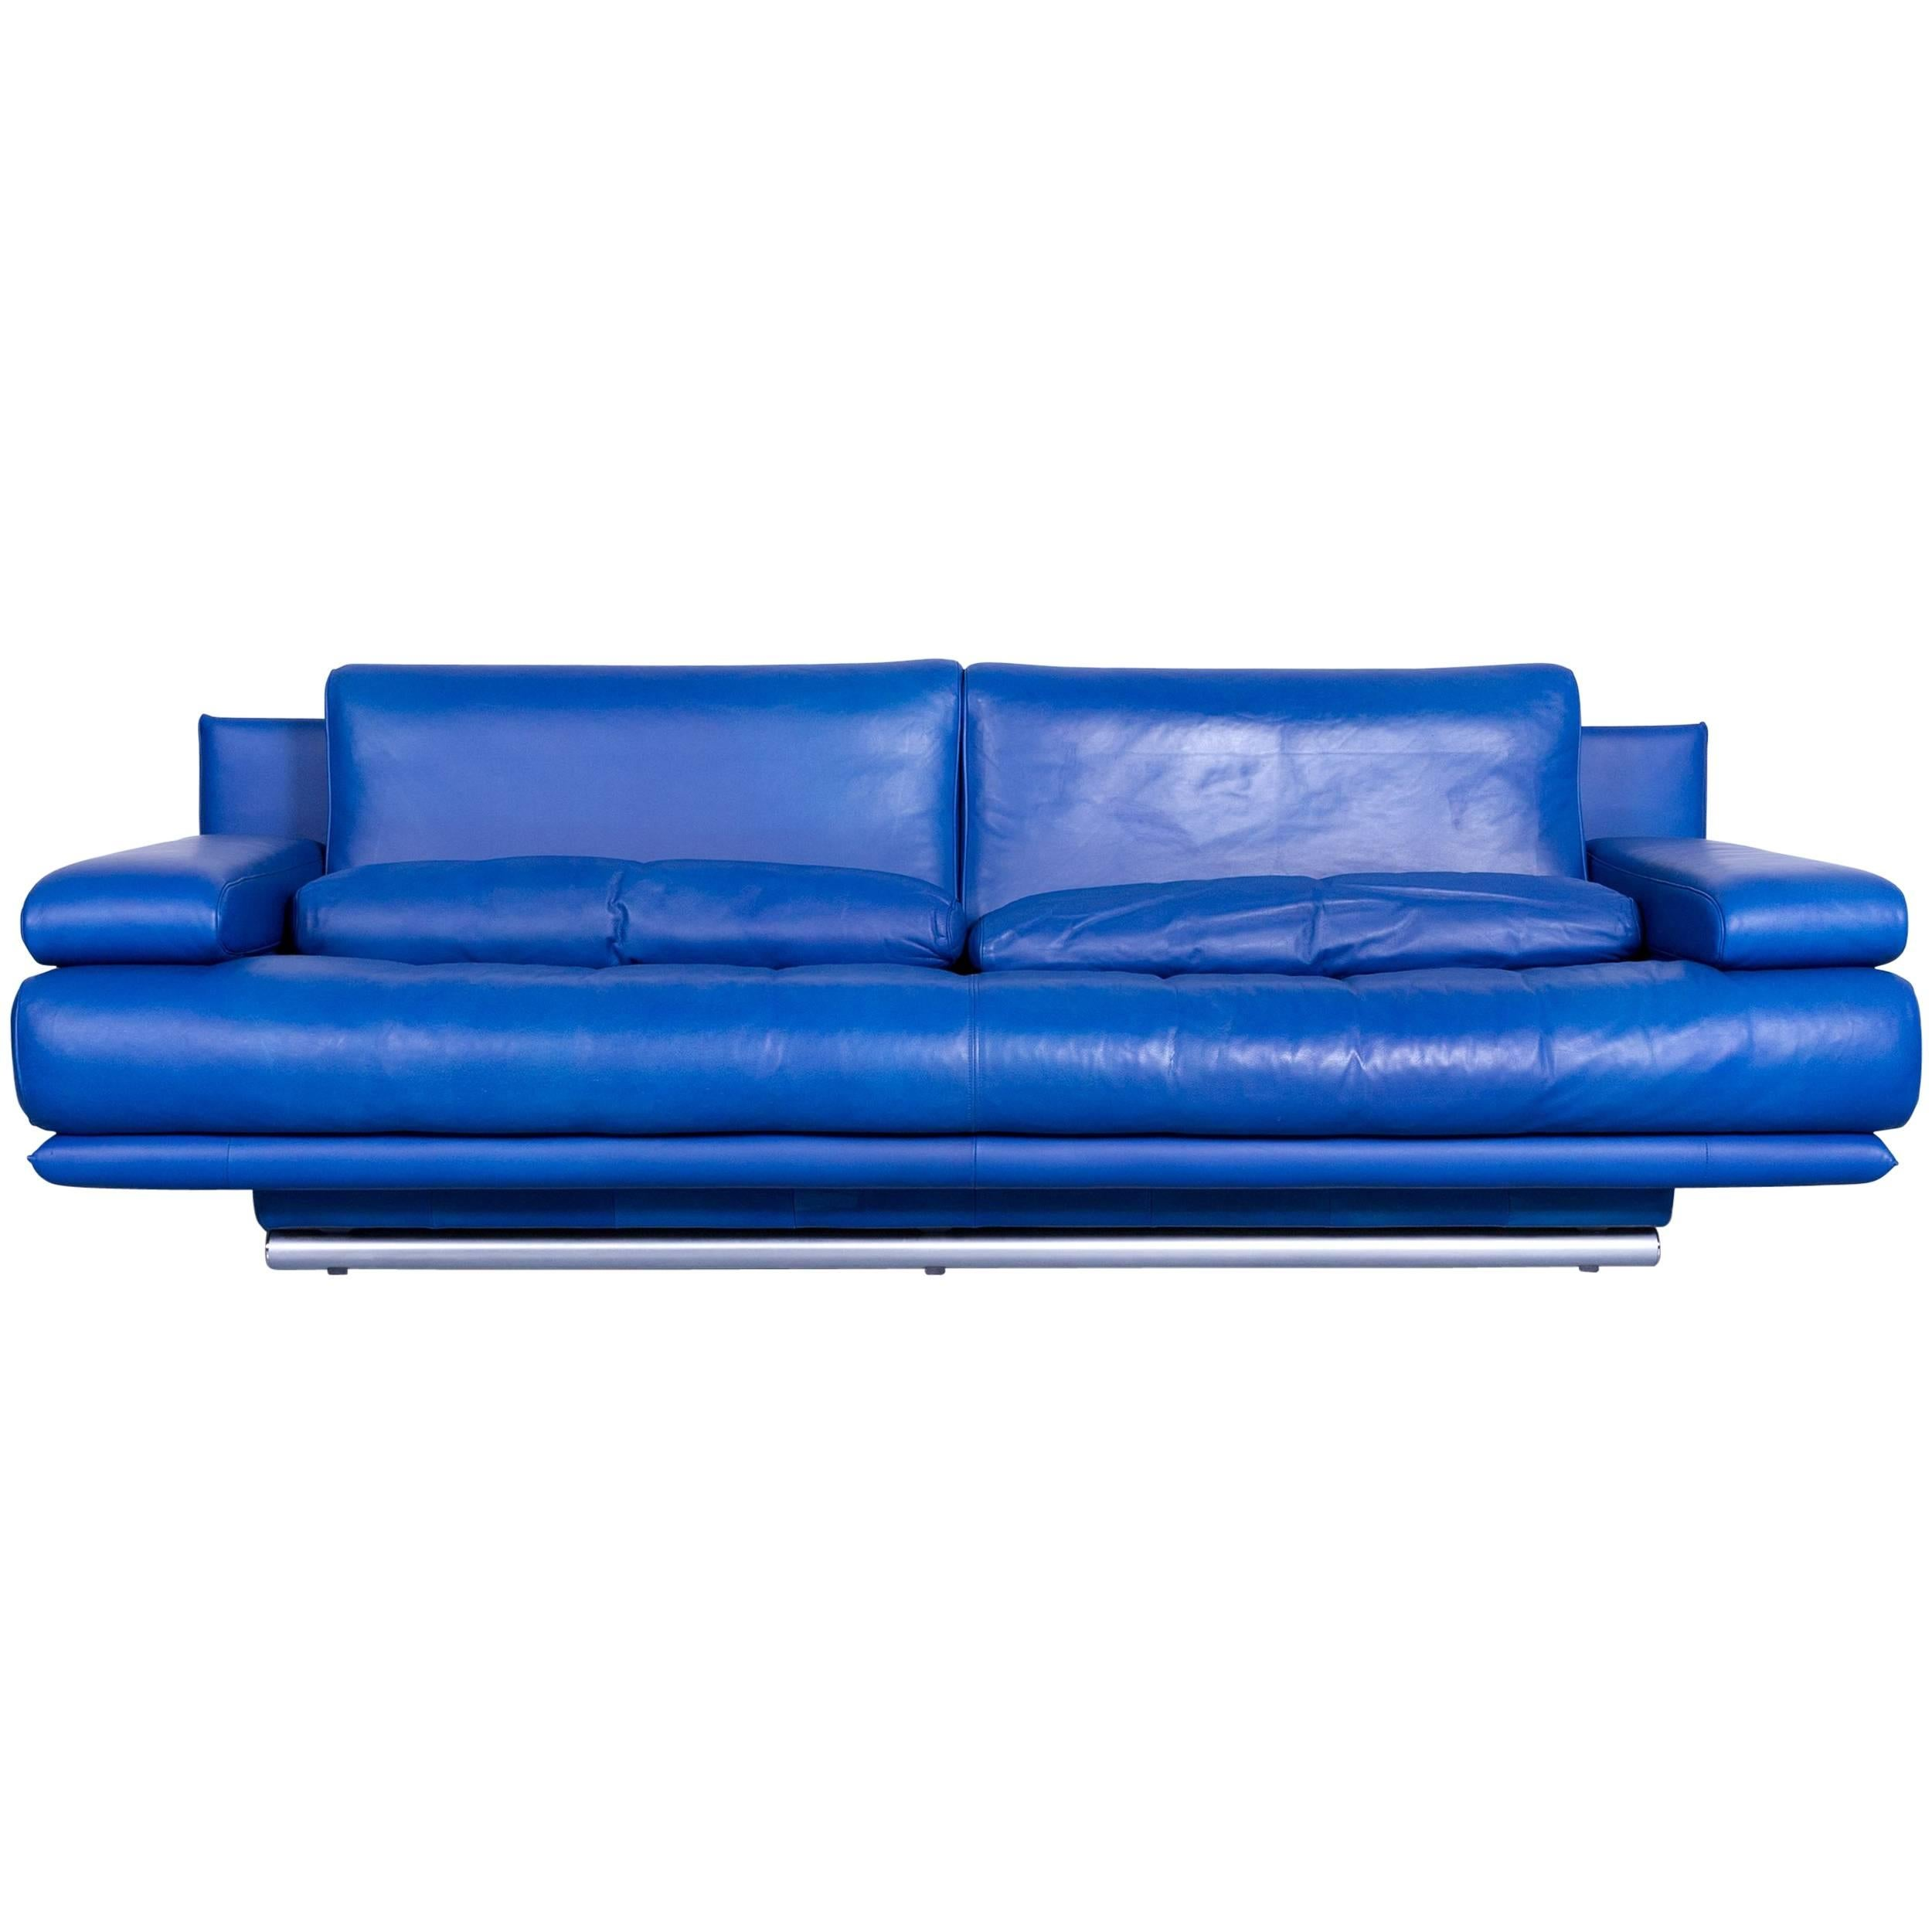 Design Sofa Rolf Benz Rolf Benz 6500 Designer Sofa Blue Three-seat Modern At 1stdibs